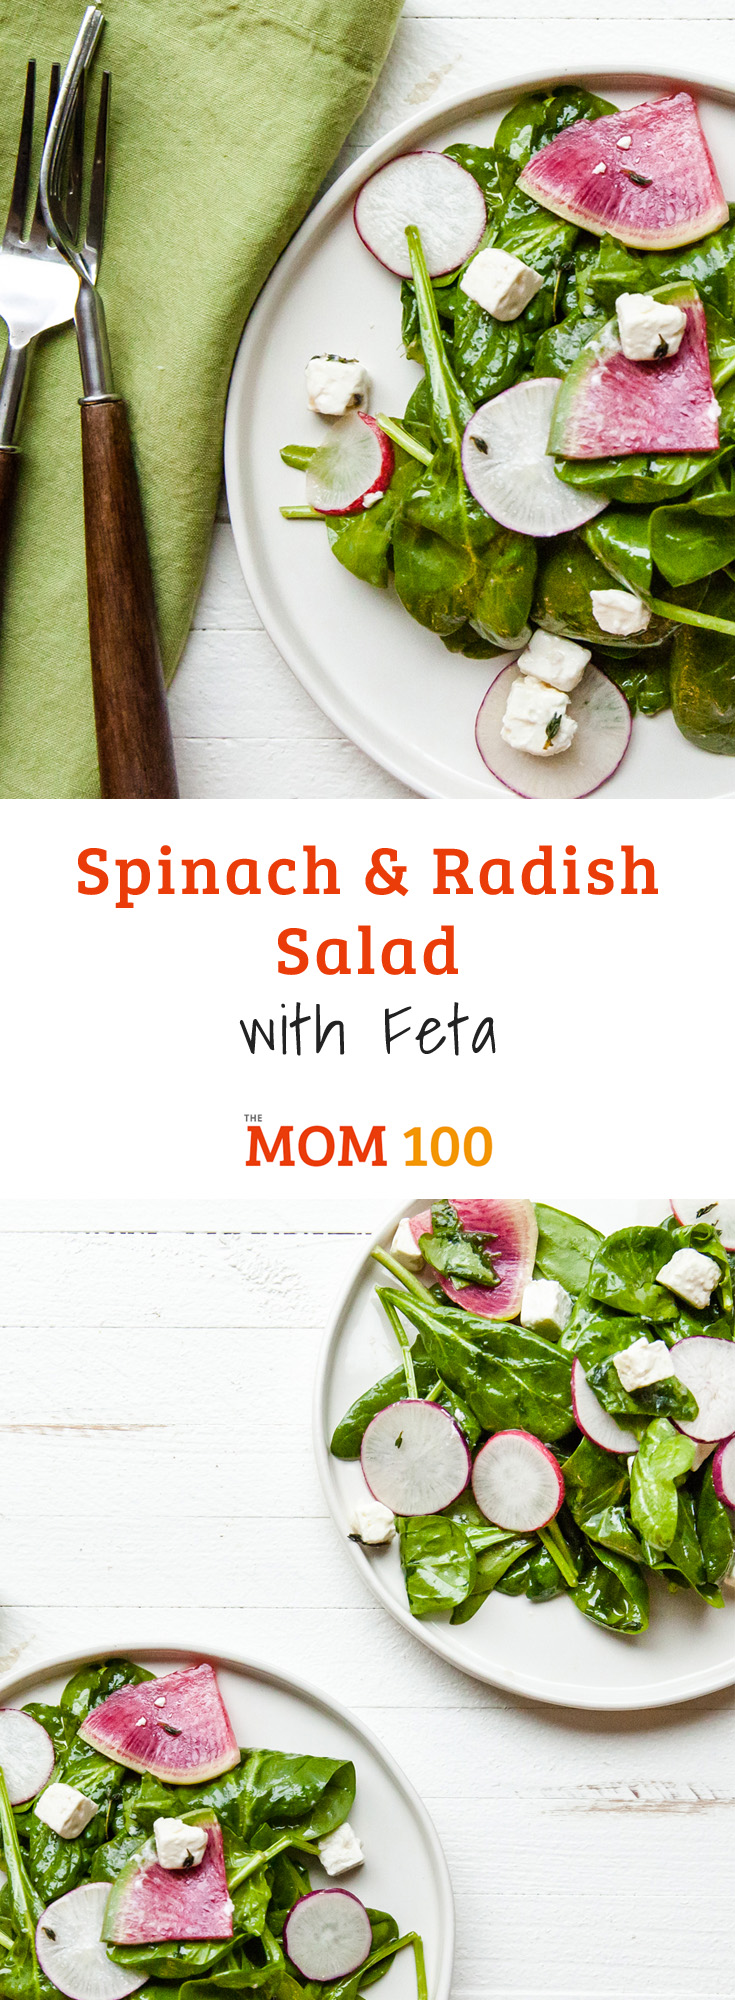 This Spinach and Radish Salad with Feta is just an attractive salad you can turn to time and time again. Pretty and simple.